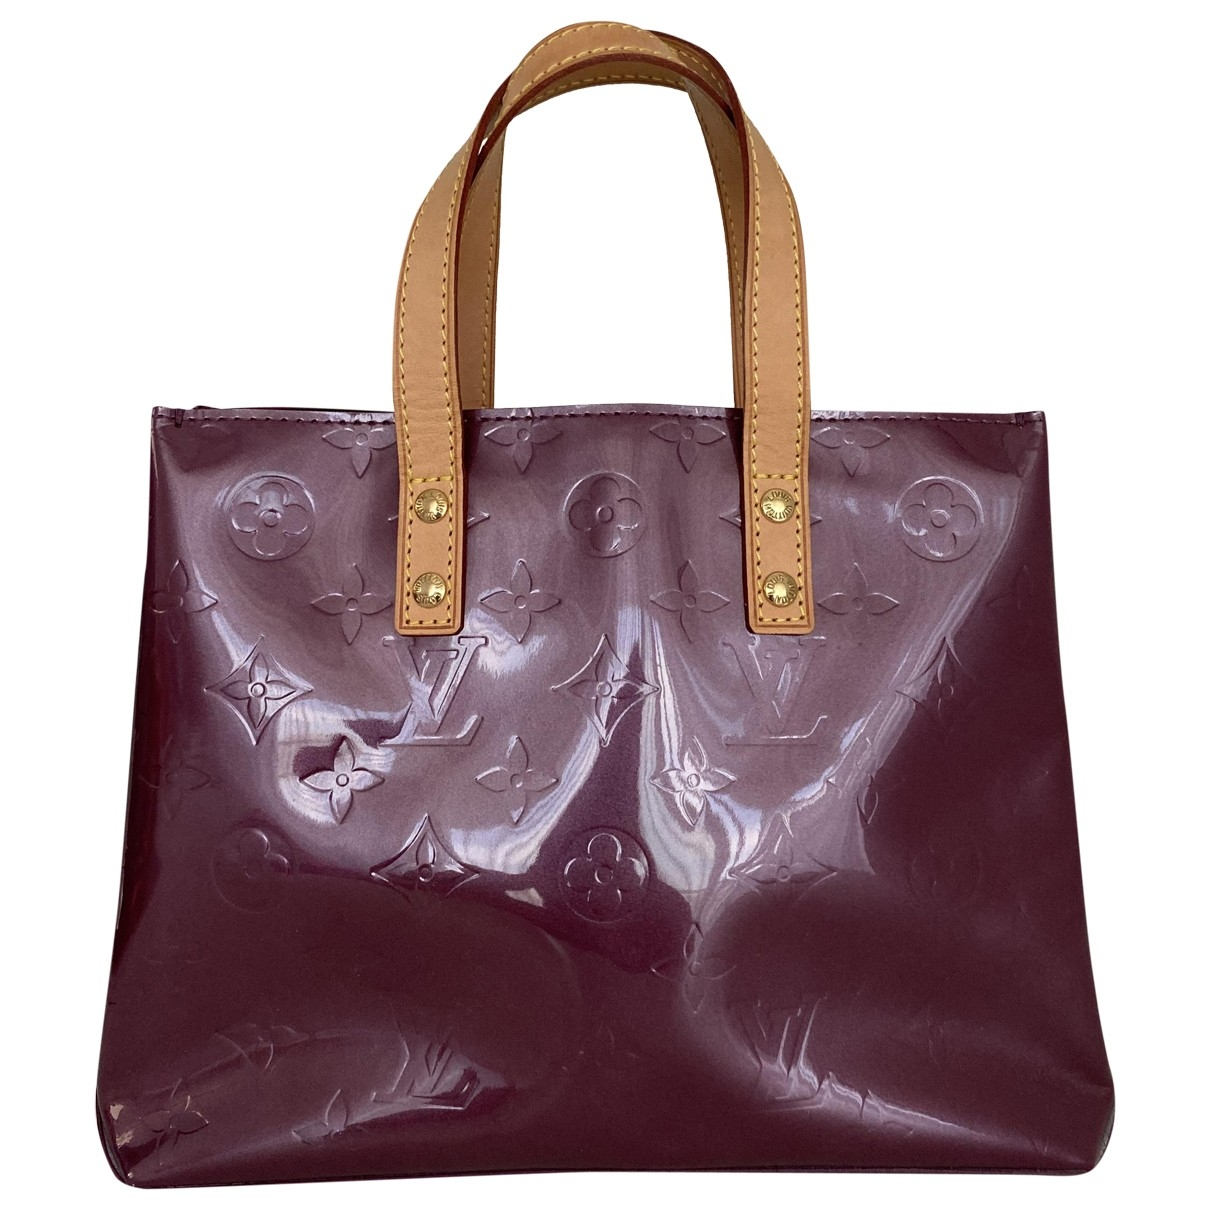 Louis Vuitton Houston Burgundy Patent leather handbag for Women \N